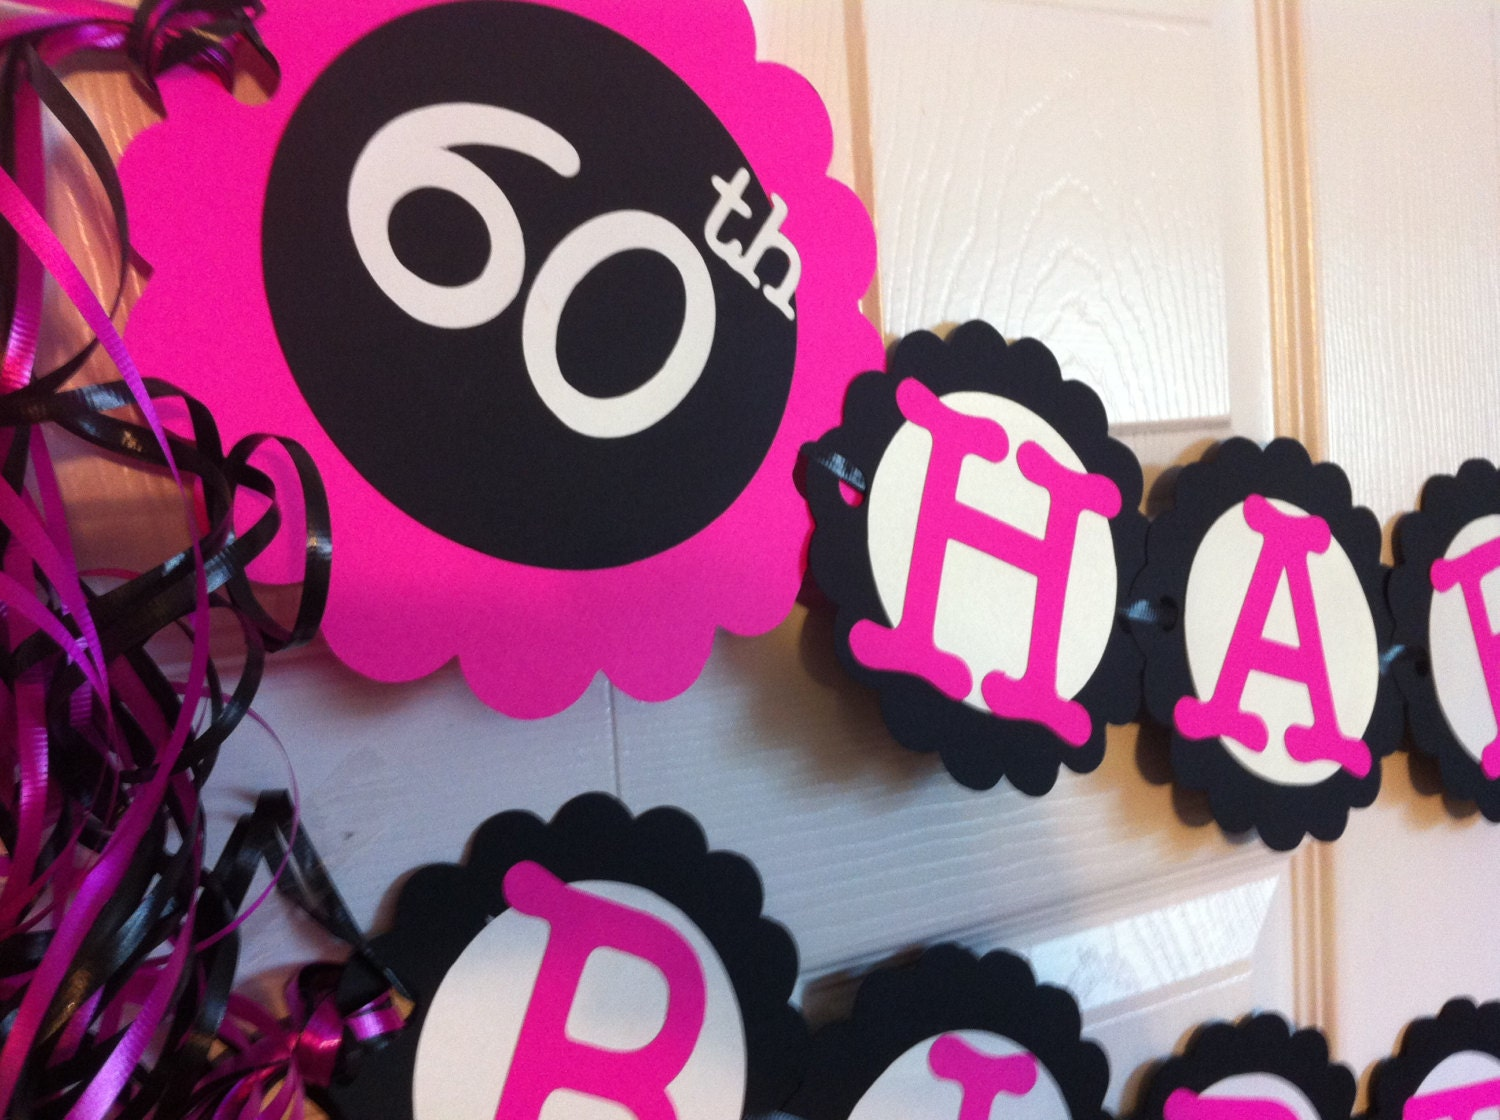 60th birthday decorations personalization available for 60th party decoration ideas